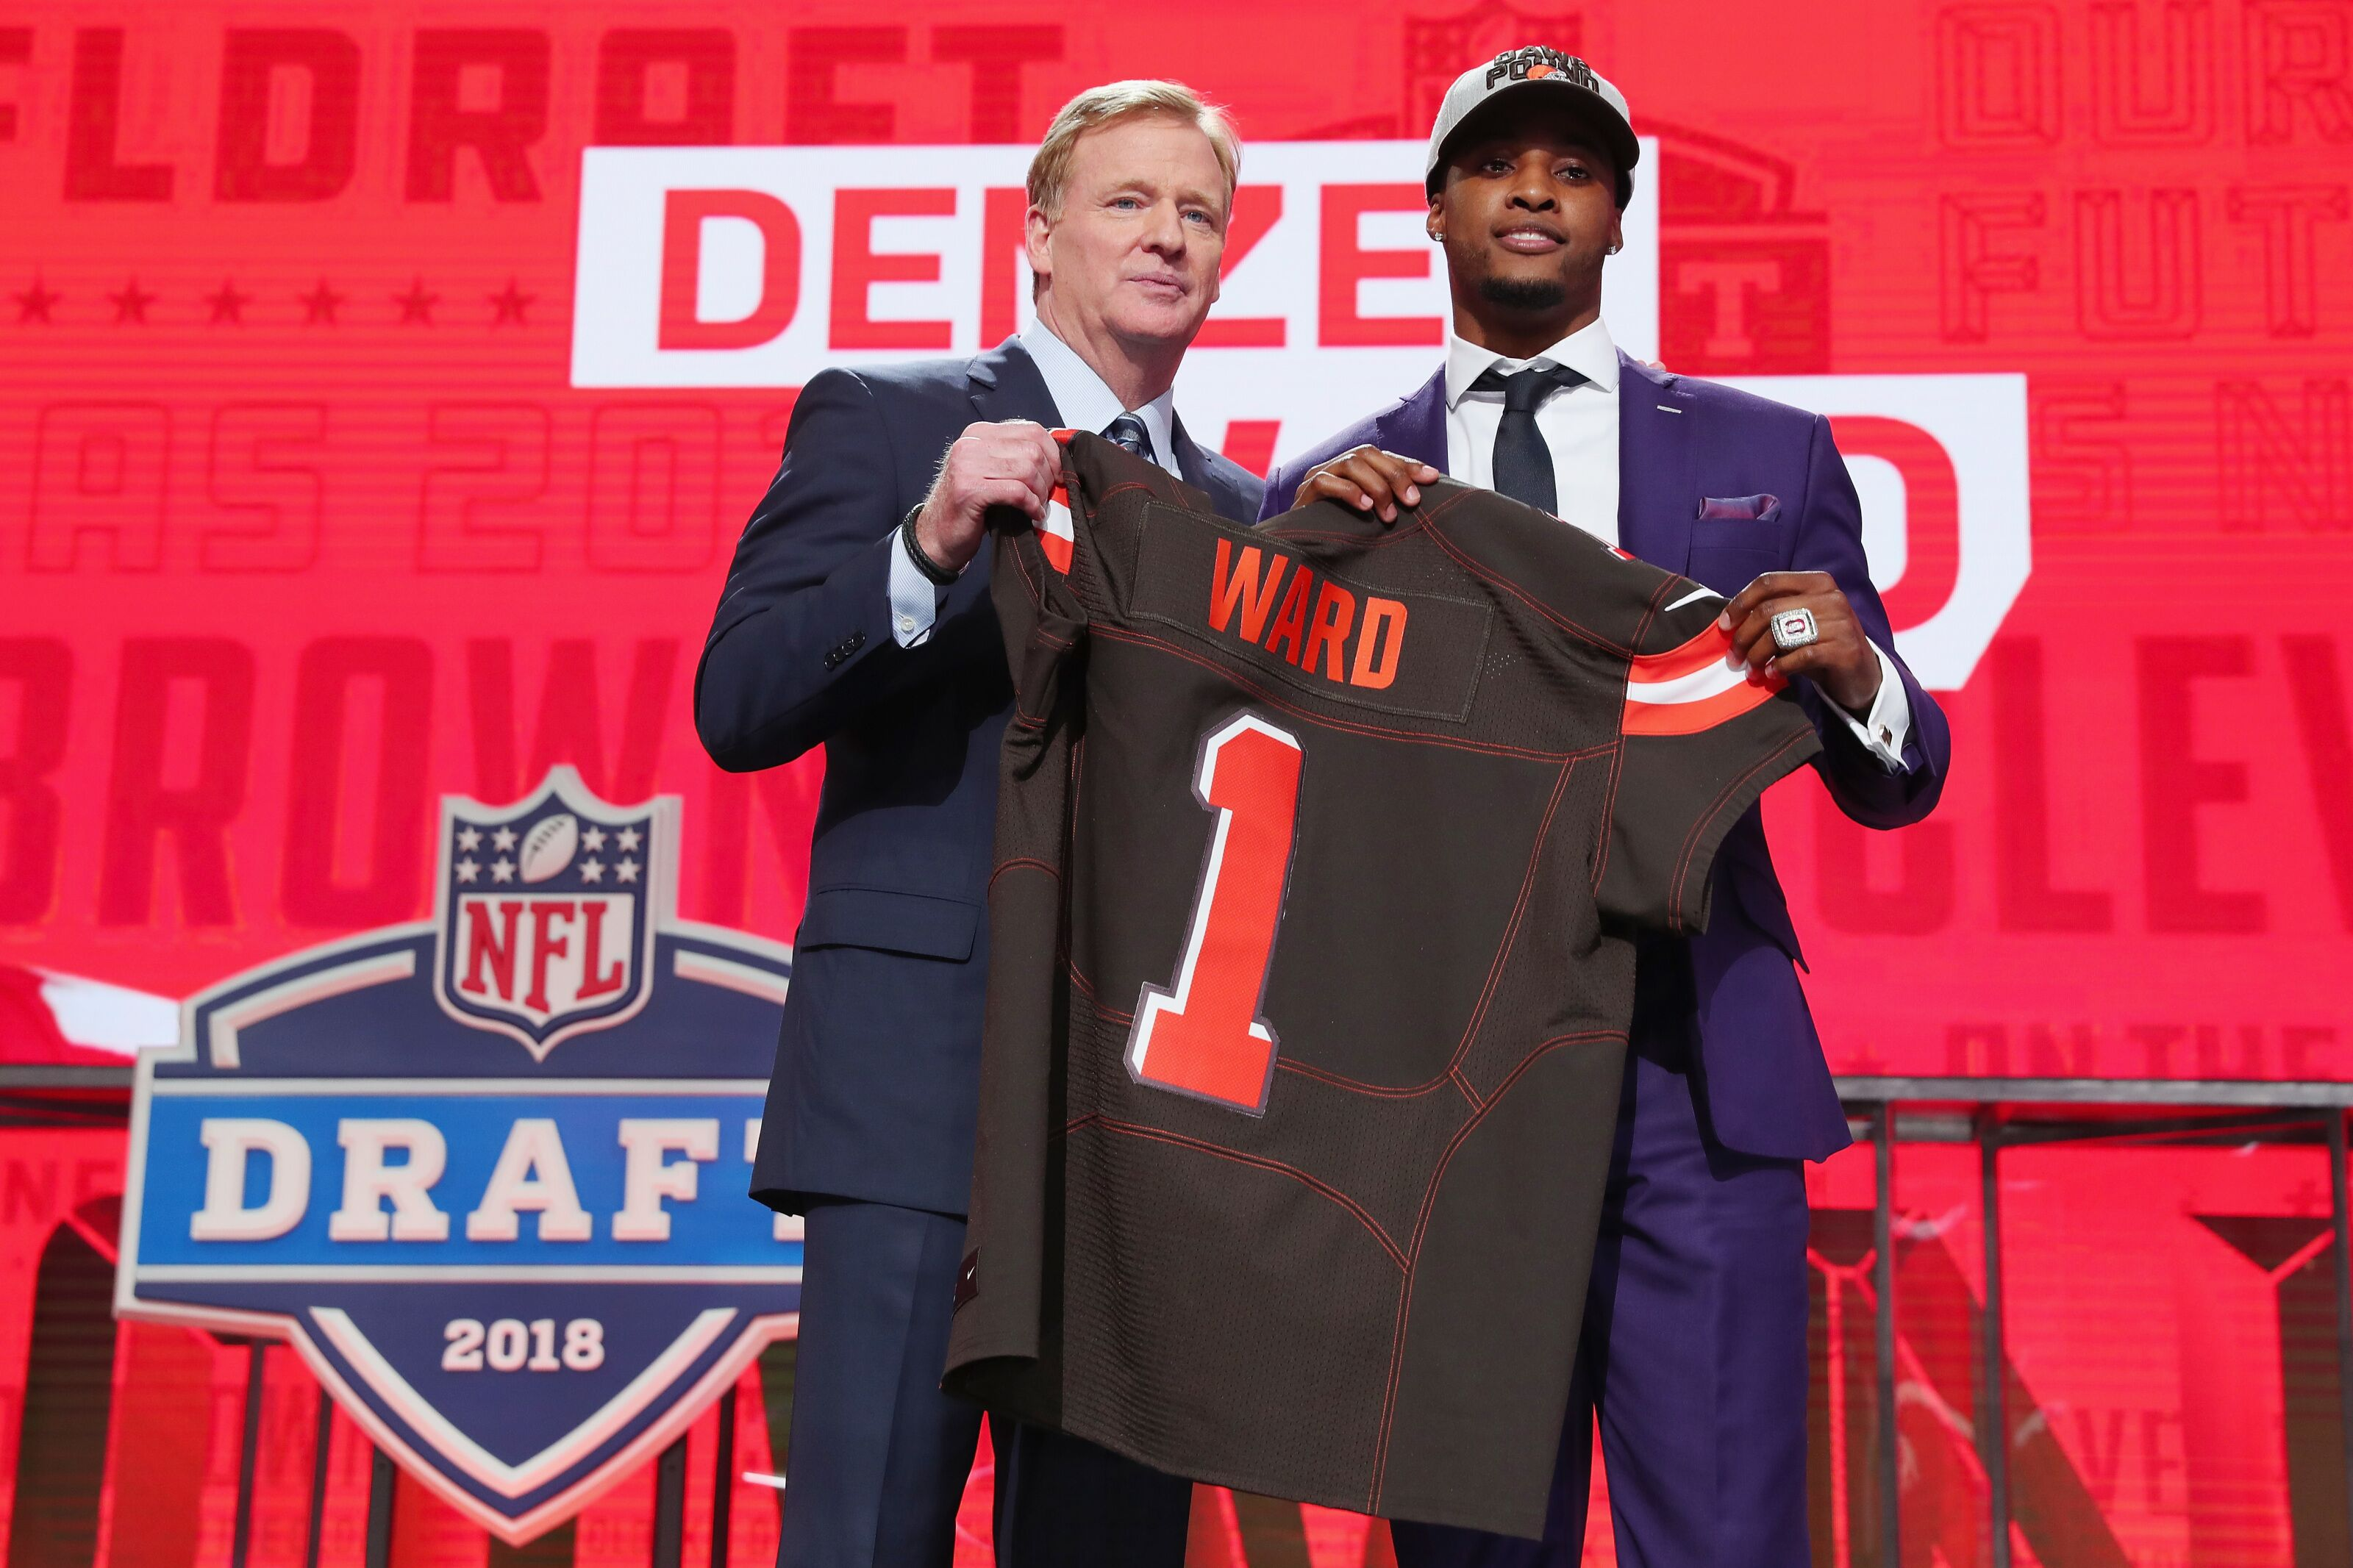 Image result for denzel ward draft with commissioner